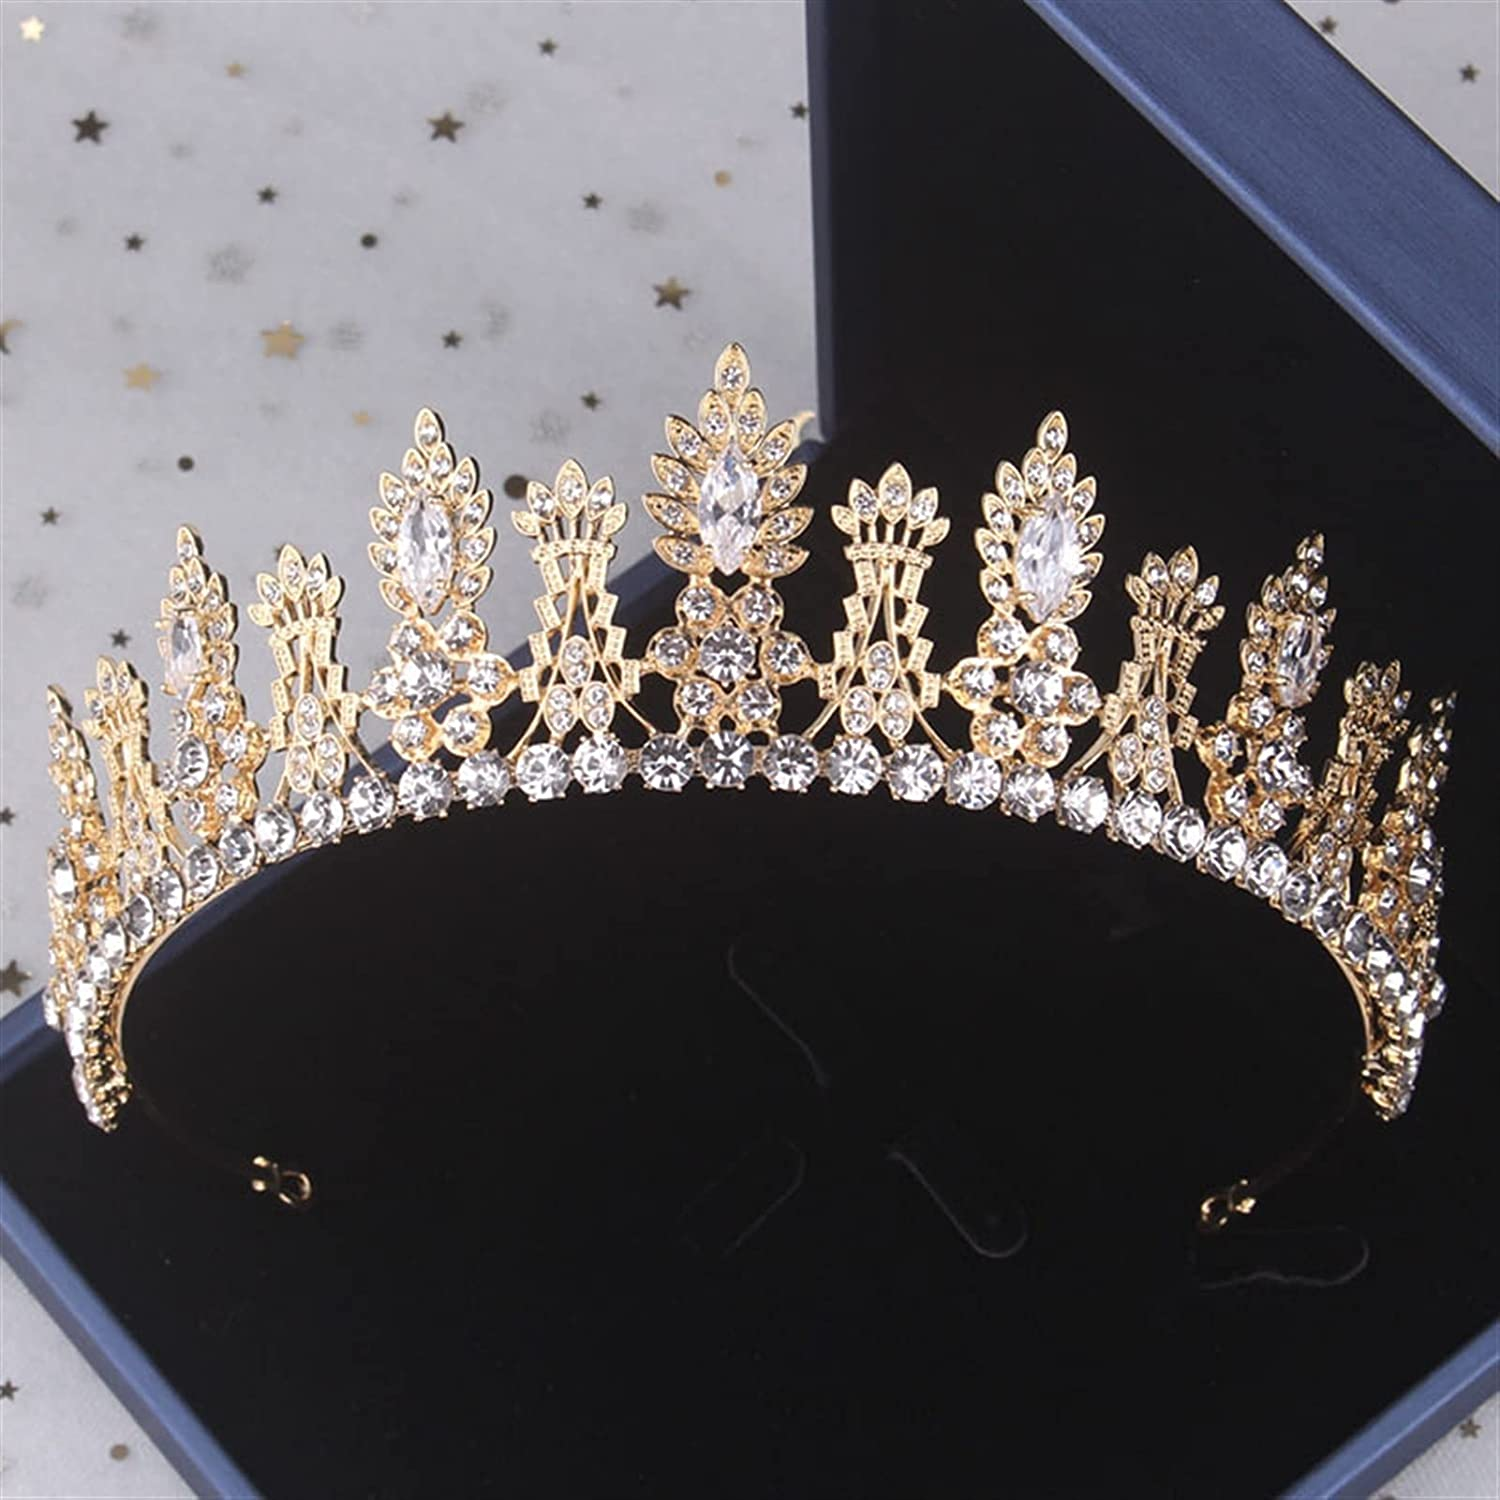 YUANBOO Baroque Vintage Gold Crystal Leaf Bridal Jewelry Sets Rhinestone Wedding Crown Tiara Earrings Necklace African Beads Jewelry Set (Metal Color : 1Pcs Crown)